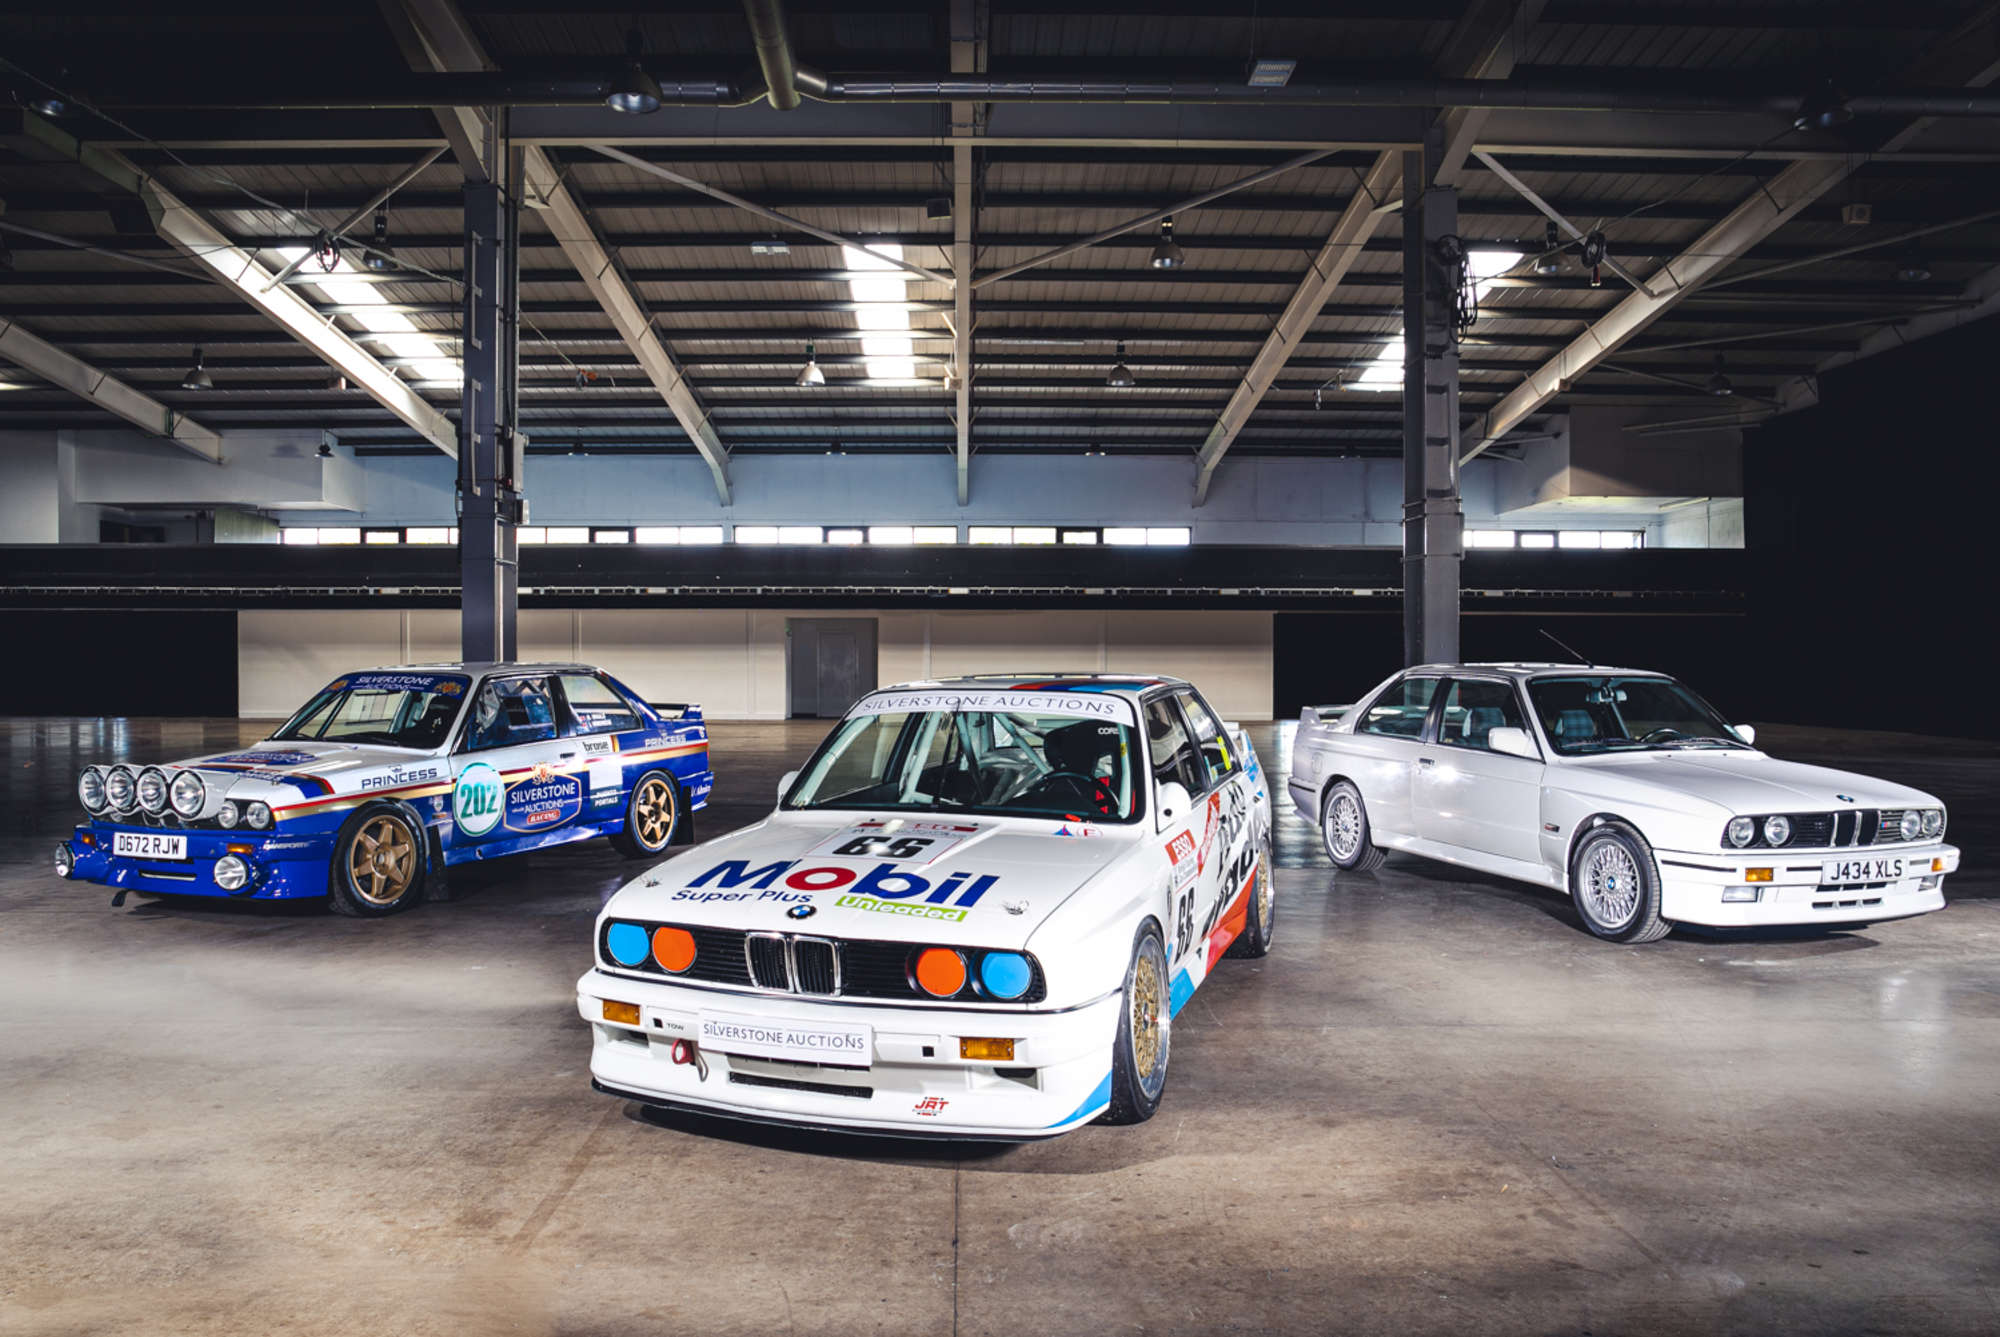 Race rally and road car versions of the BMW M3 E30